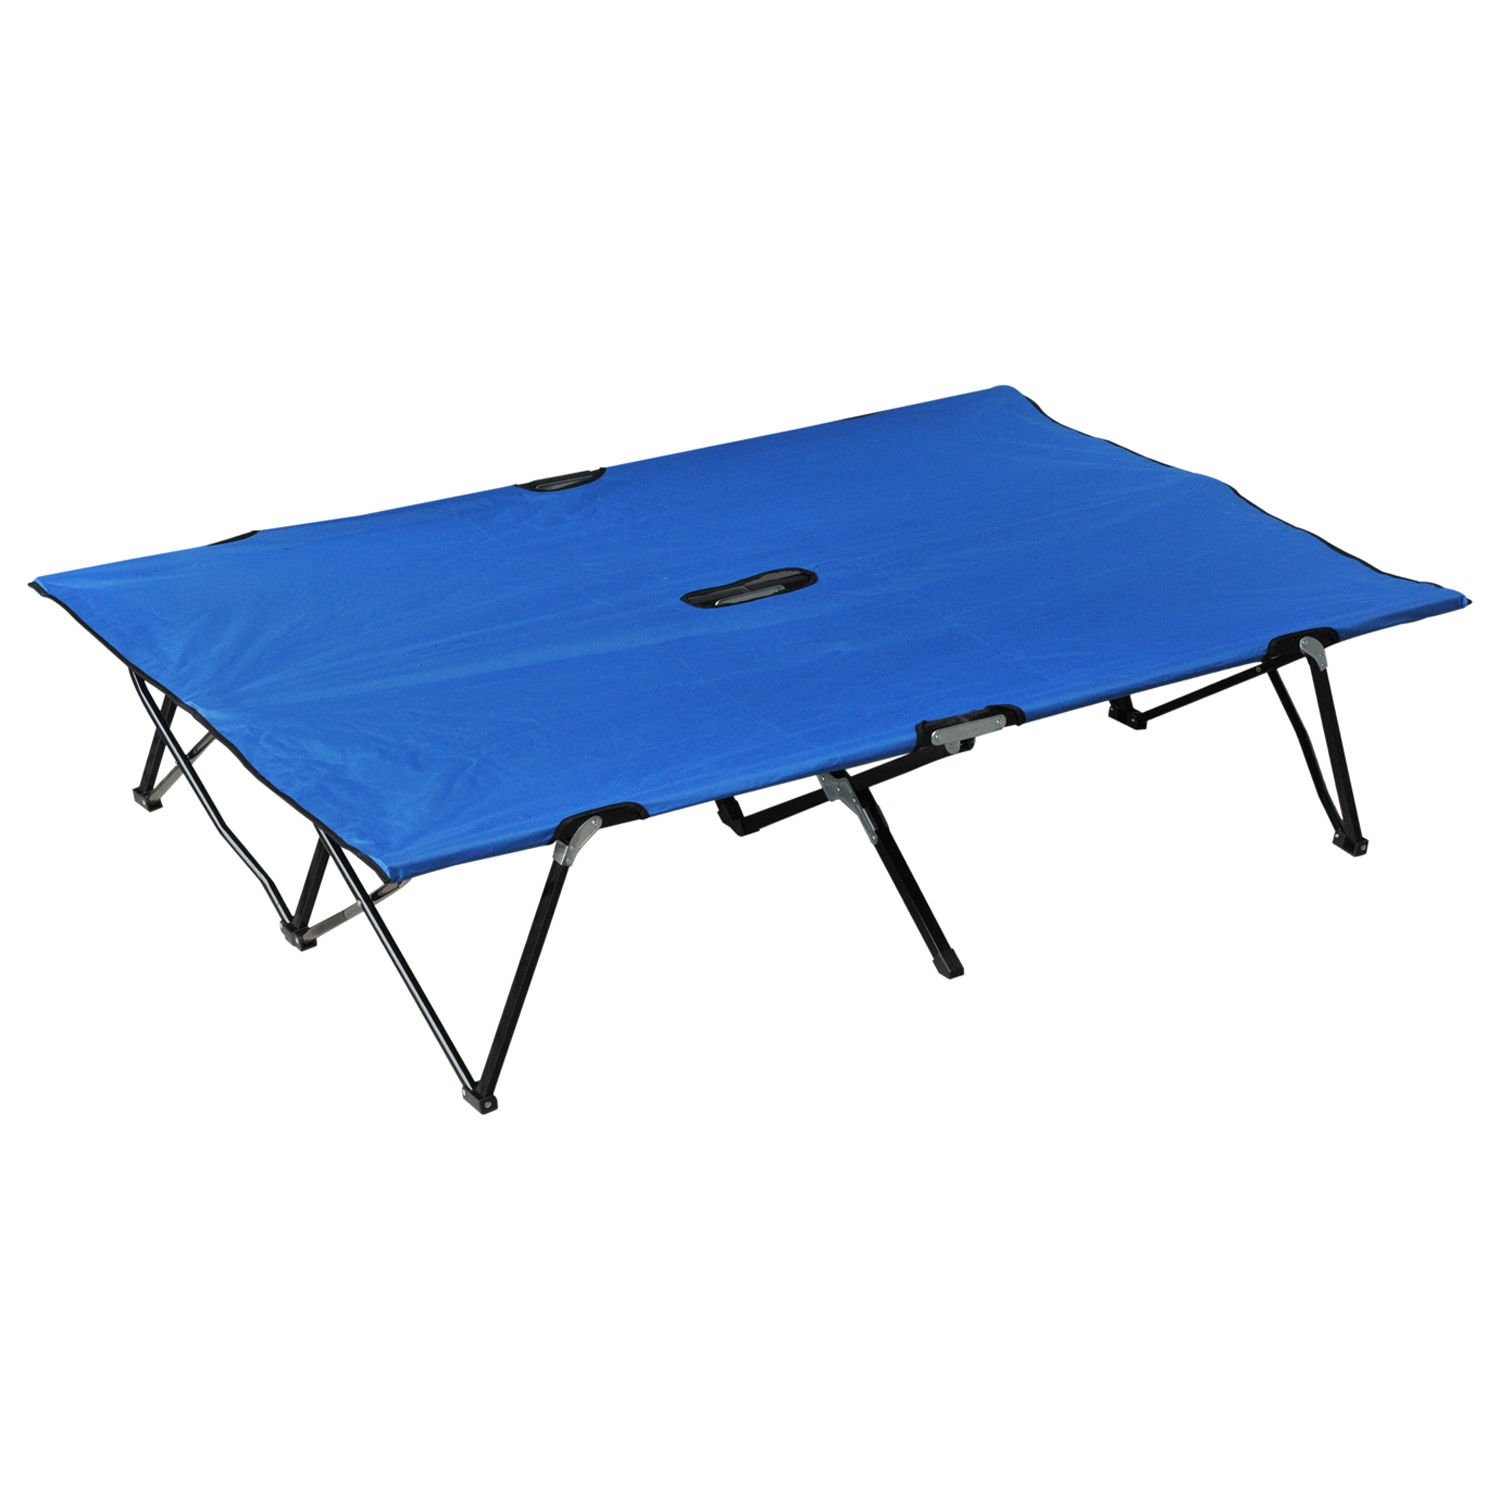 Outsunny 76'' Two Person Double Wide Folding Camping Cot - Blue